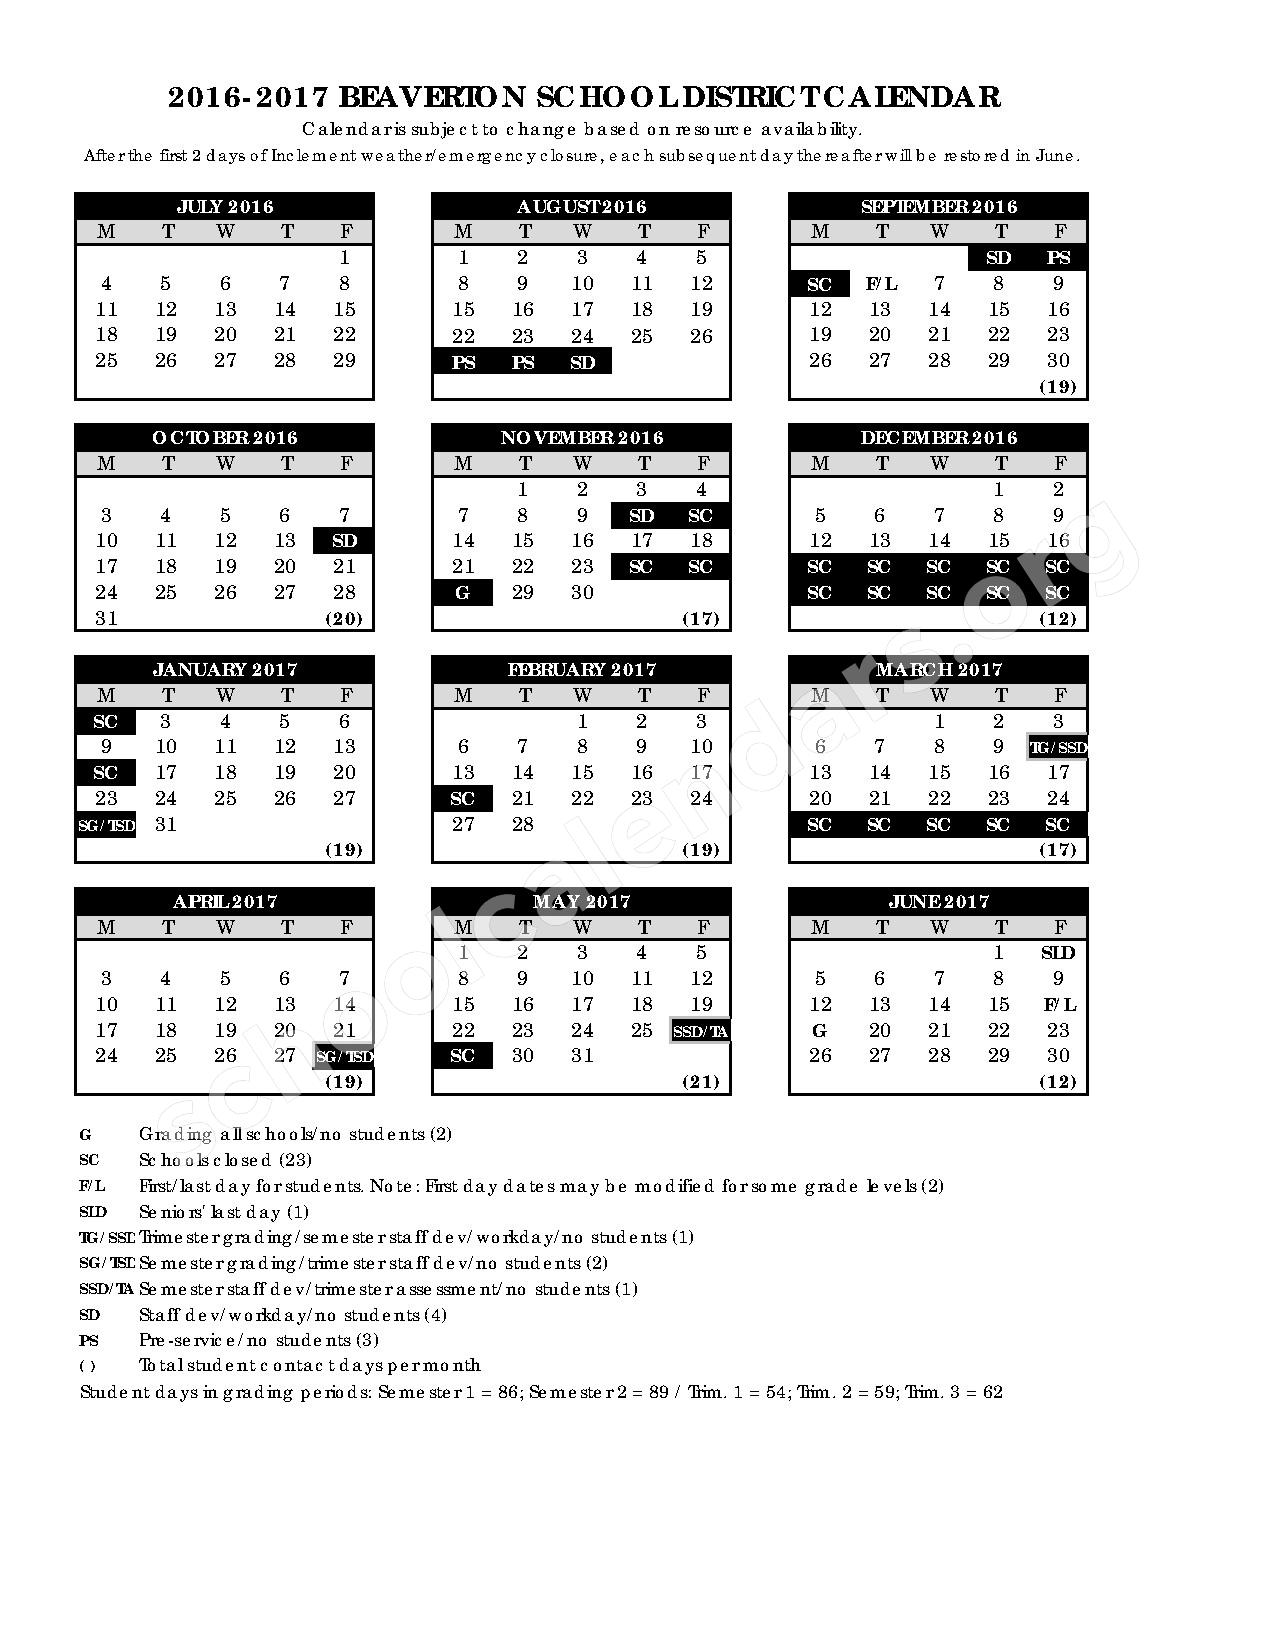 2016 - 2017 School Calendar – Arts & Communication Middle Magnet School – page 1